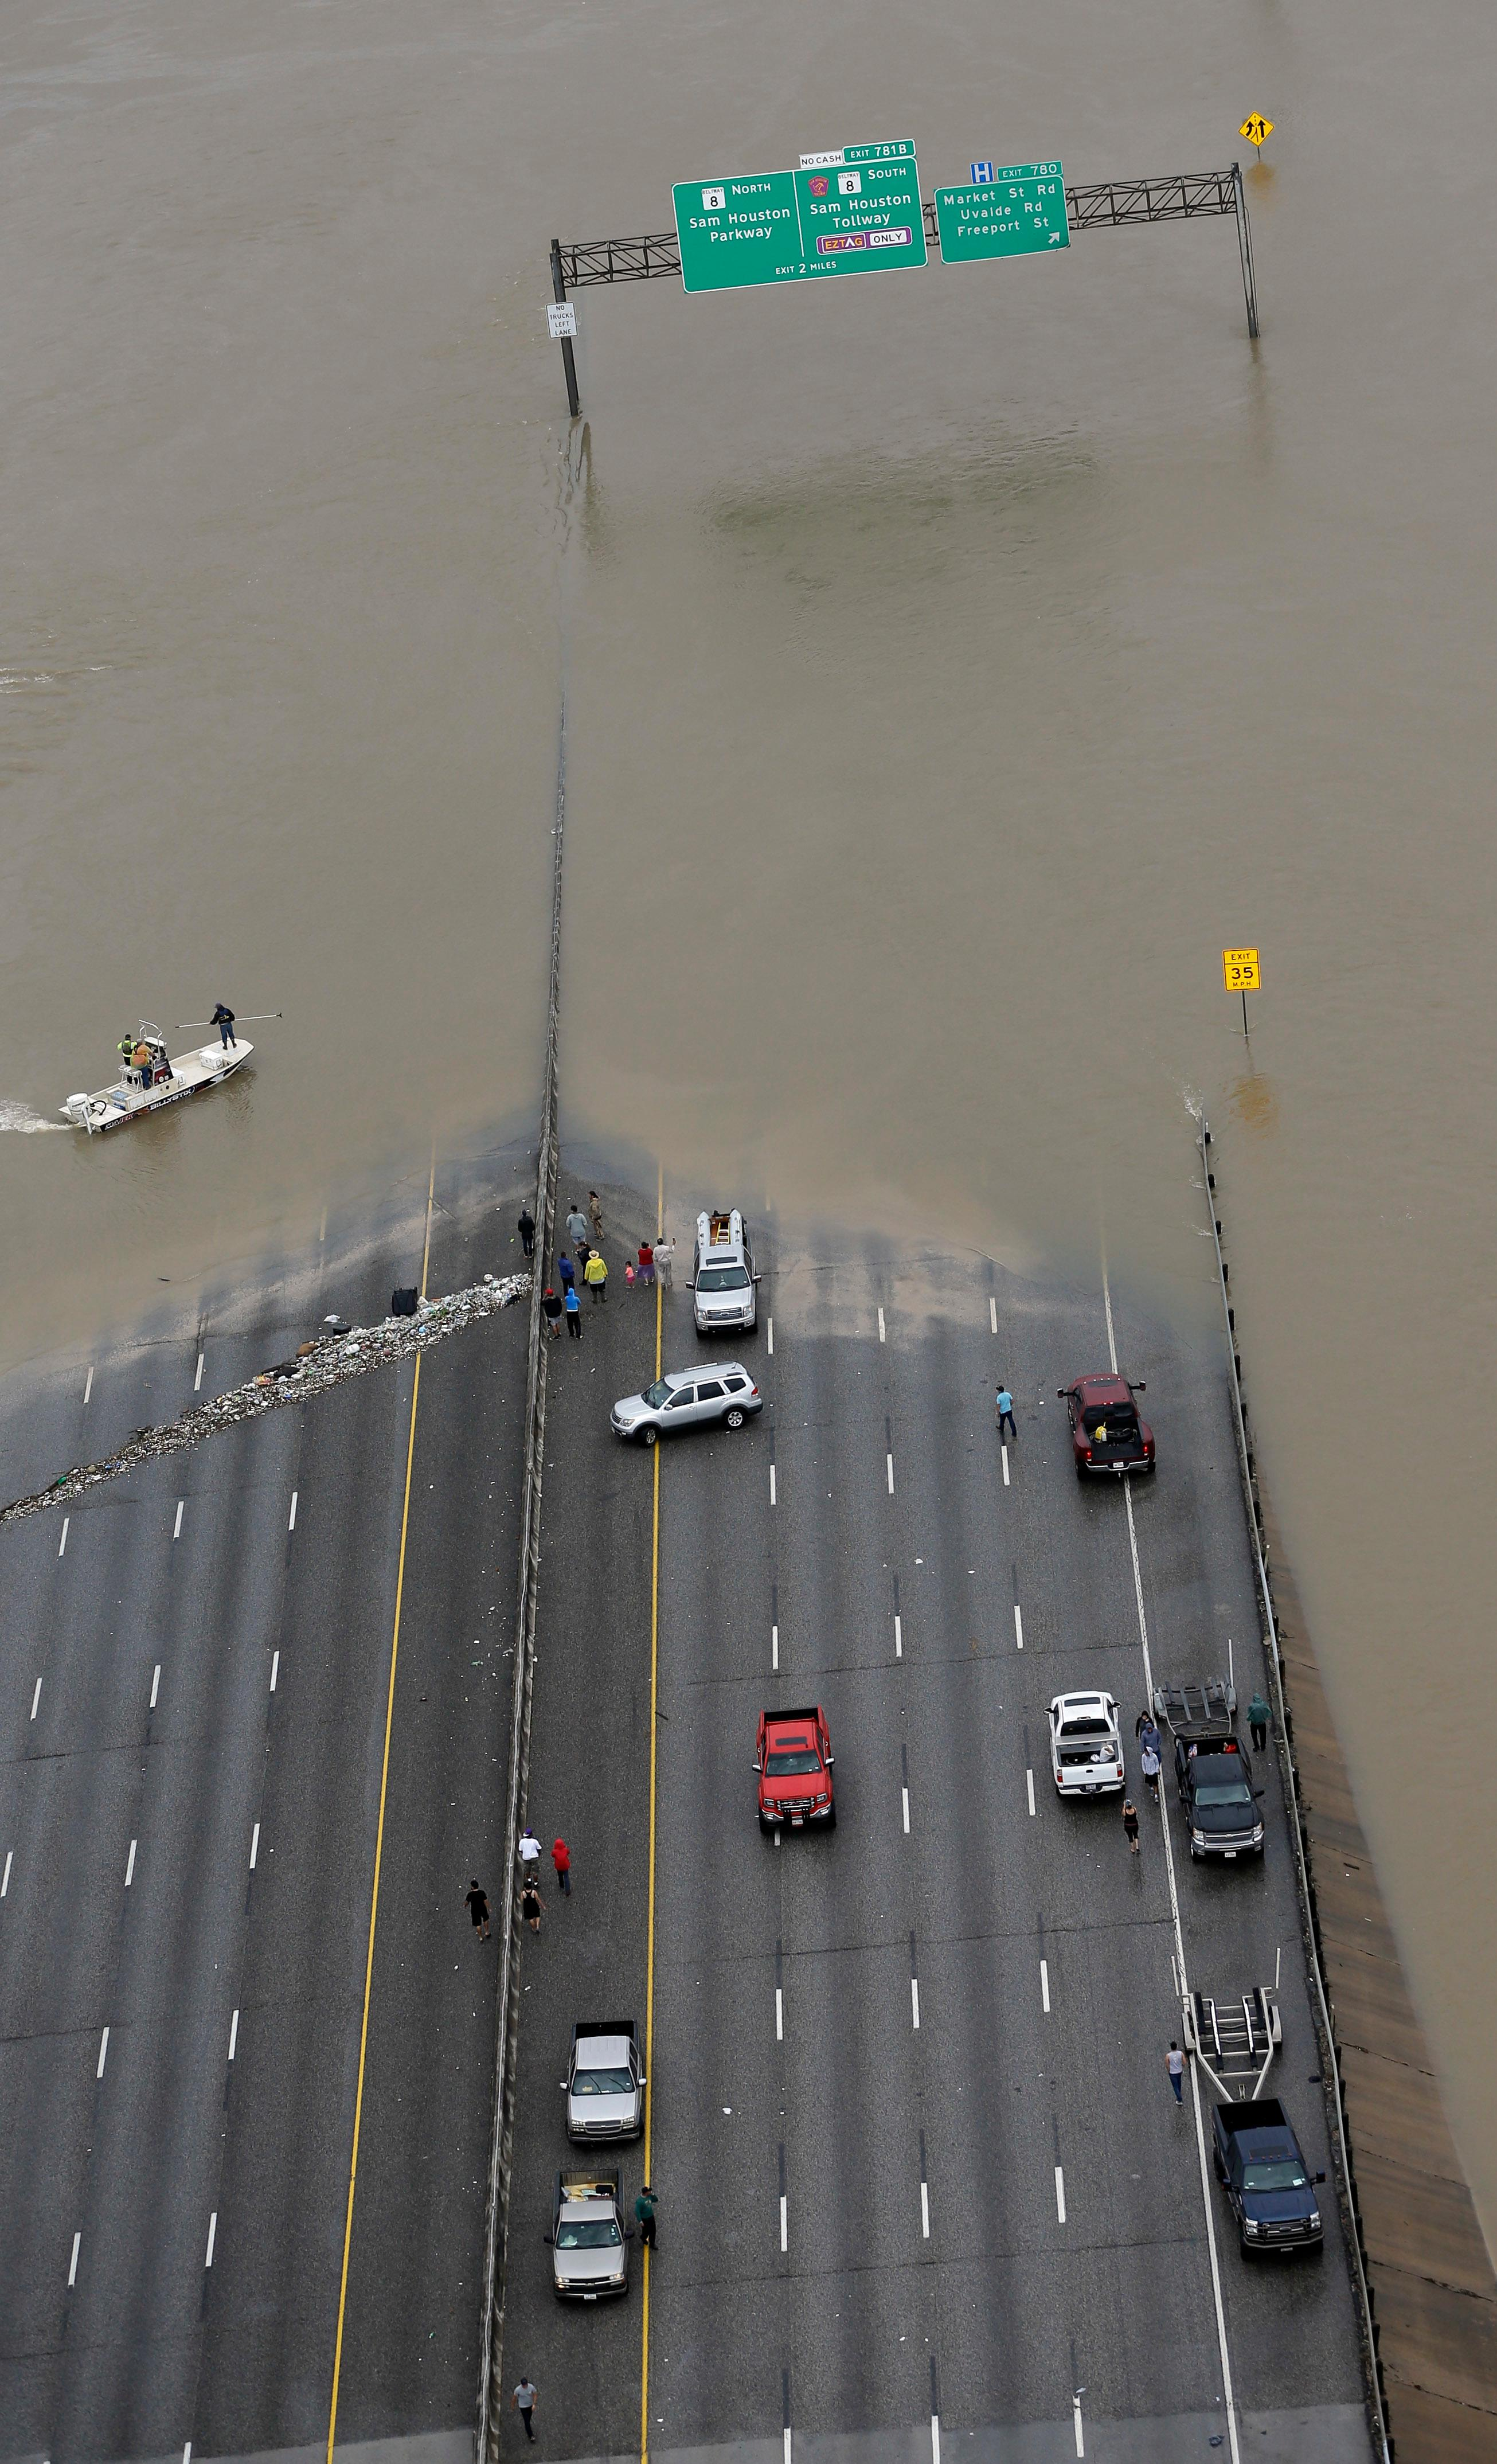 Interstate 10 is closed due to floodwaters from Tropical Storm Harvey Tuesday, Aug. 29, 2017, in Houston. (AP Photo/David J. Phillip)